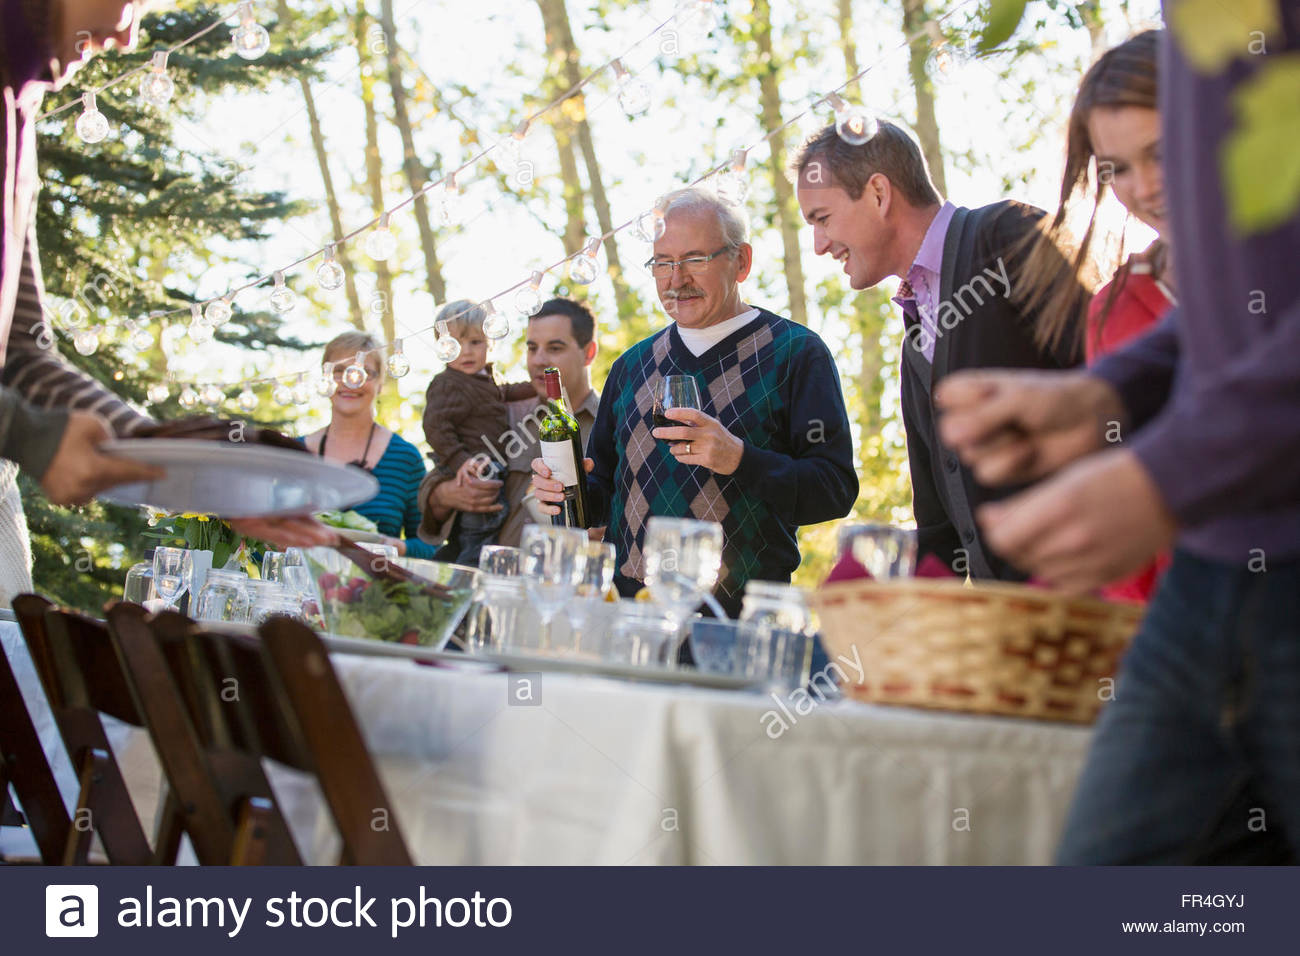 Family lined up for family reunion meal. - Stock Image